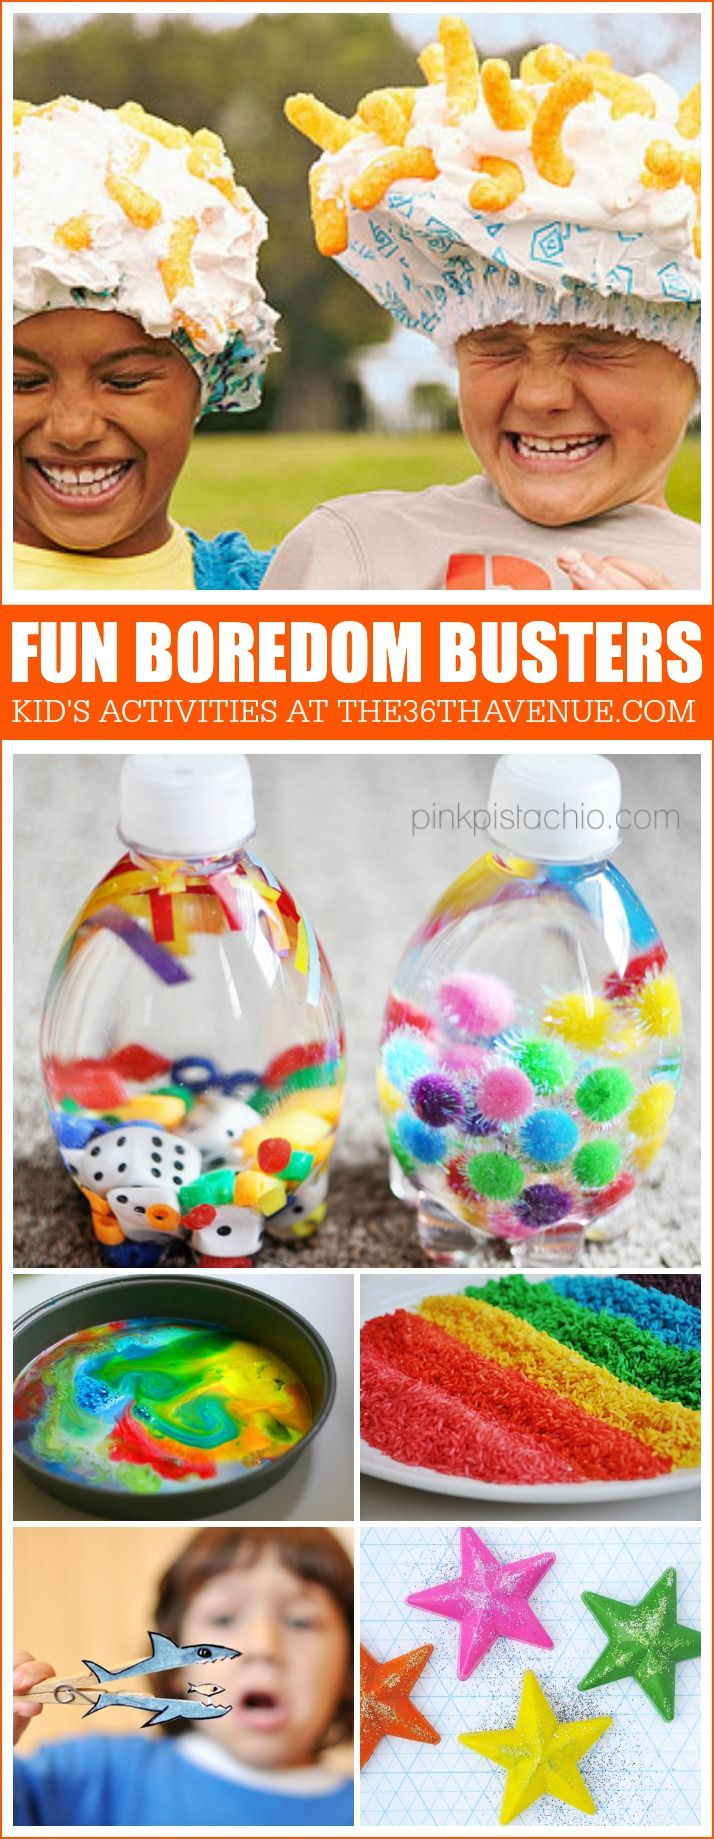 Peel your kids away from the television and have #fun with these boredom busters that any kid would enjoy. #crafting